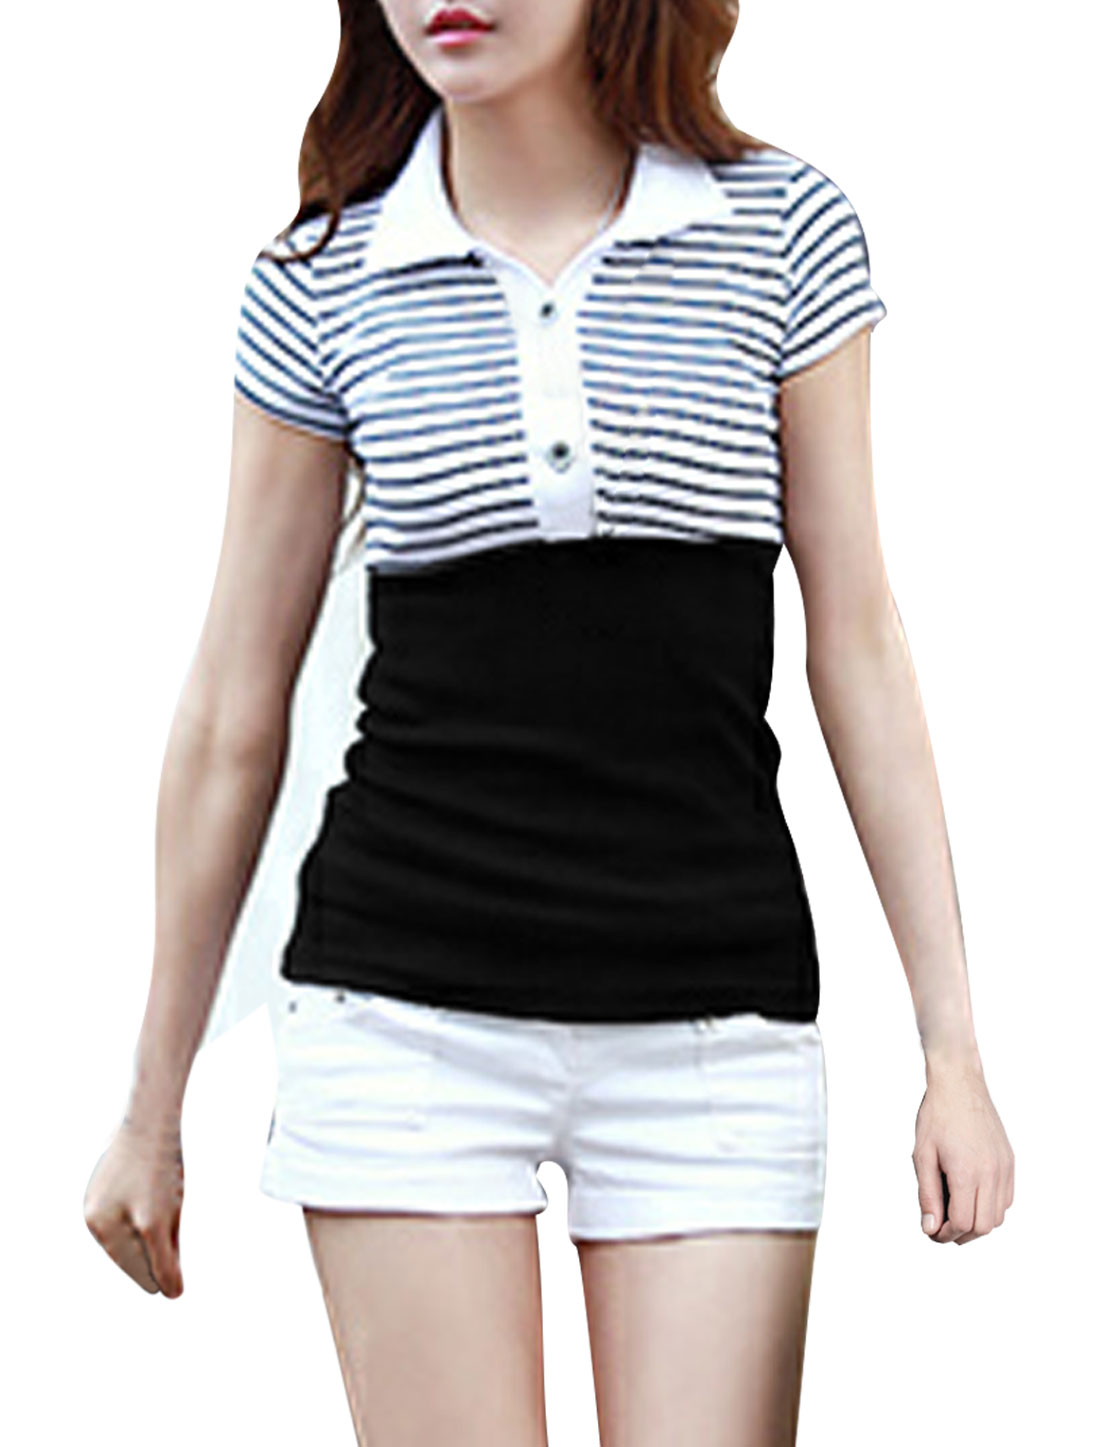 Women Convertible Collar Soft Stretchy Top Shirt Black White XS